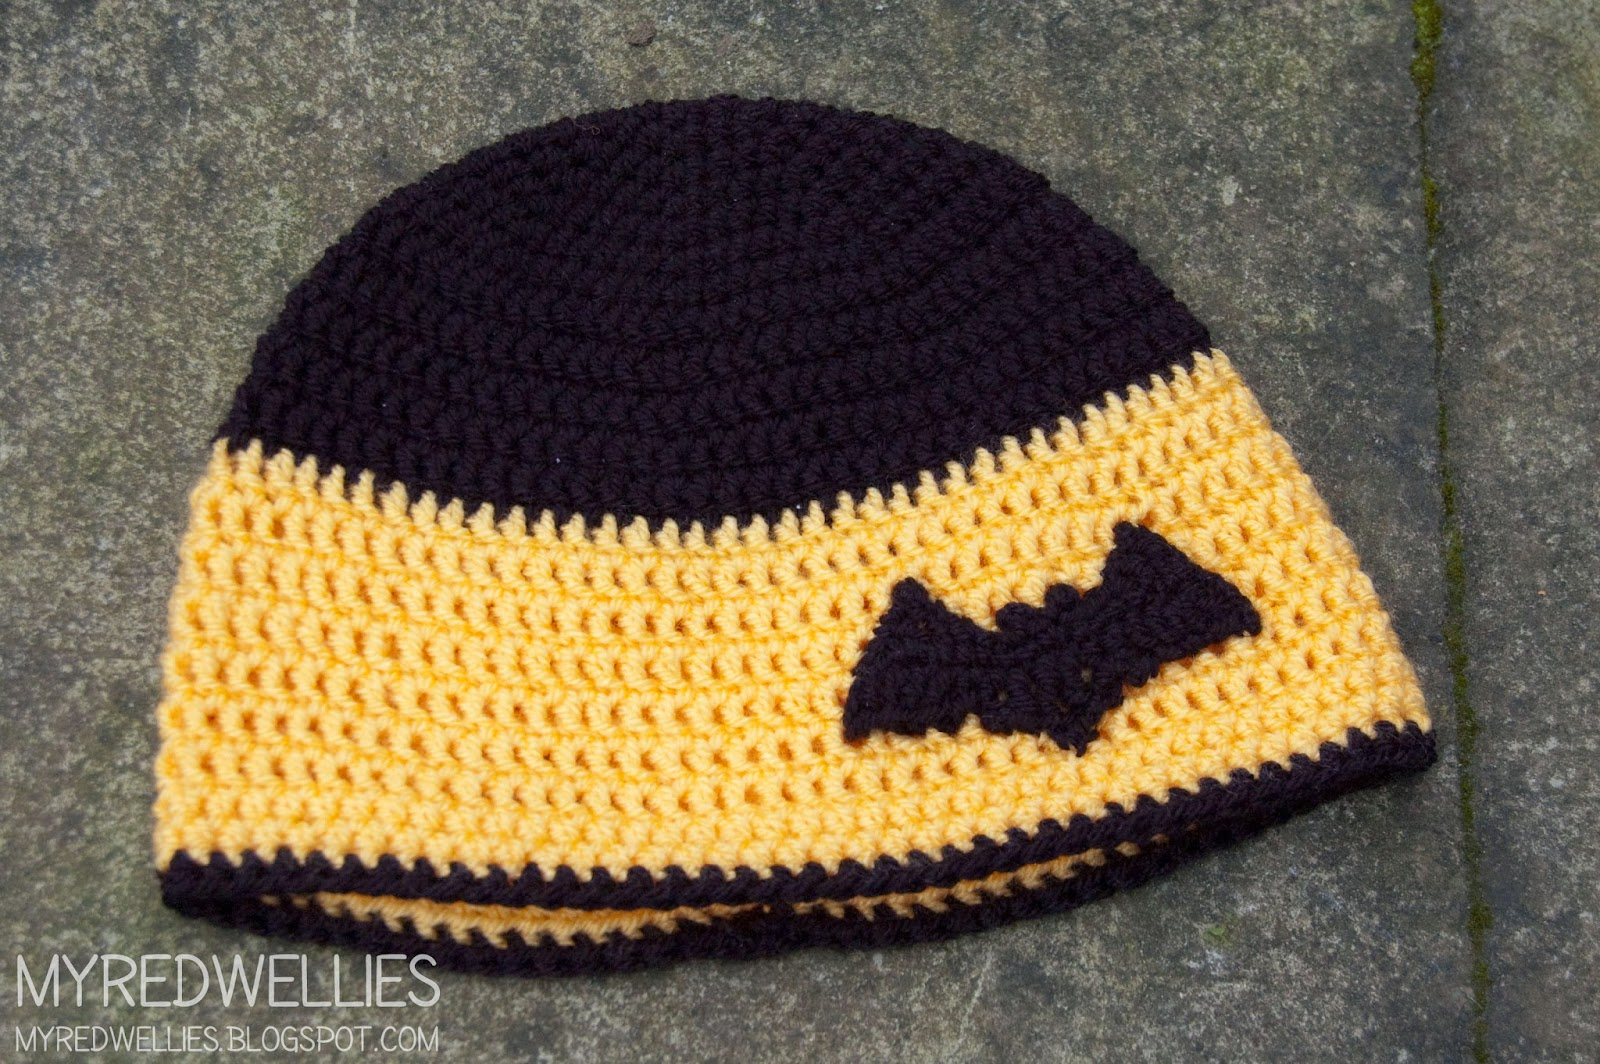 Free Crochet Patterns For Batman Hats : Remember the Anna & Elsa hats I posted not long ago? Well ...